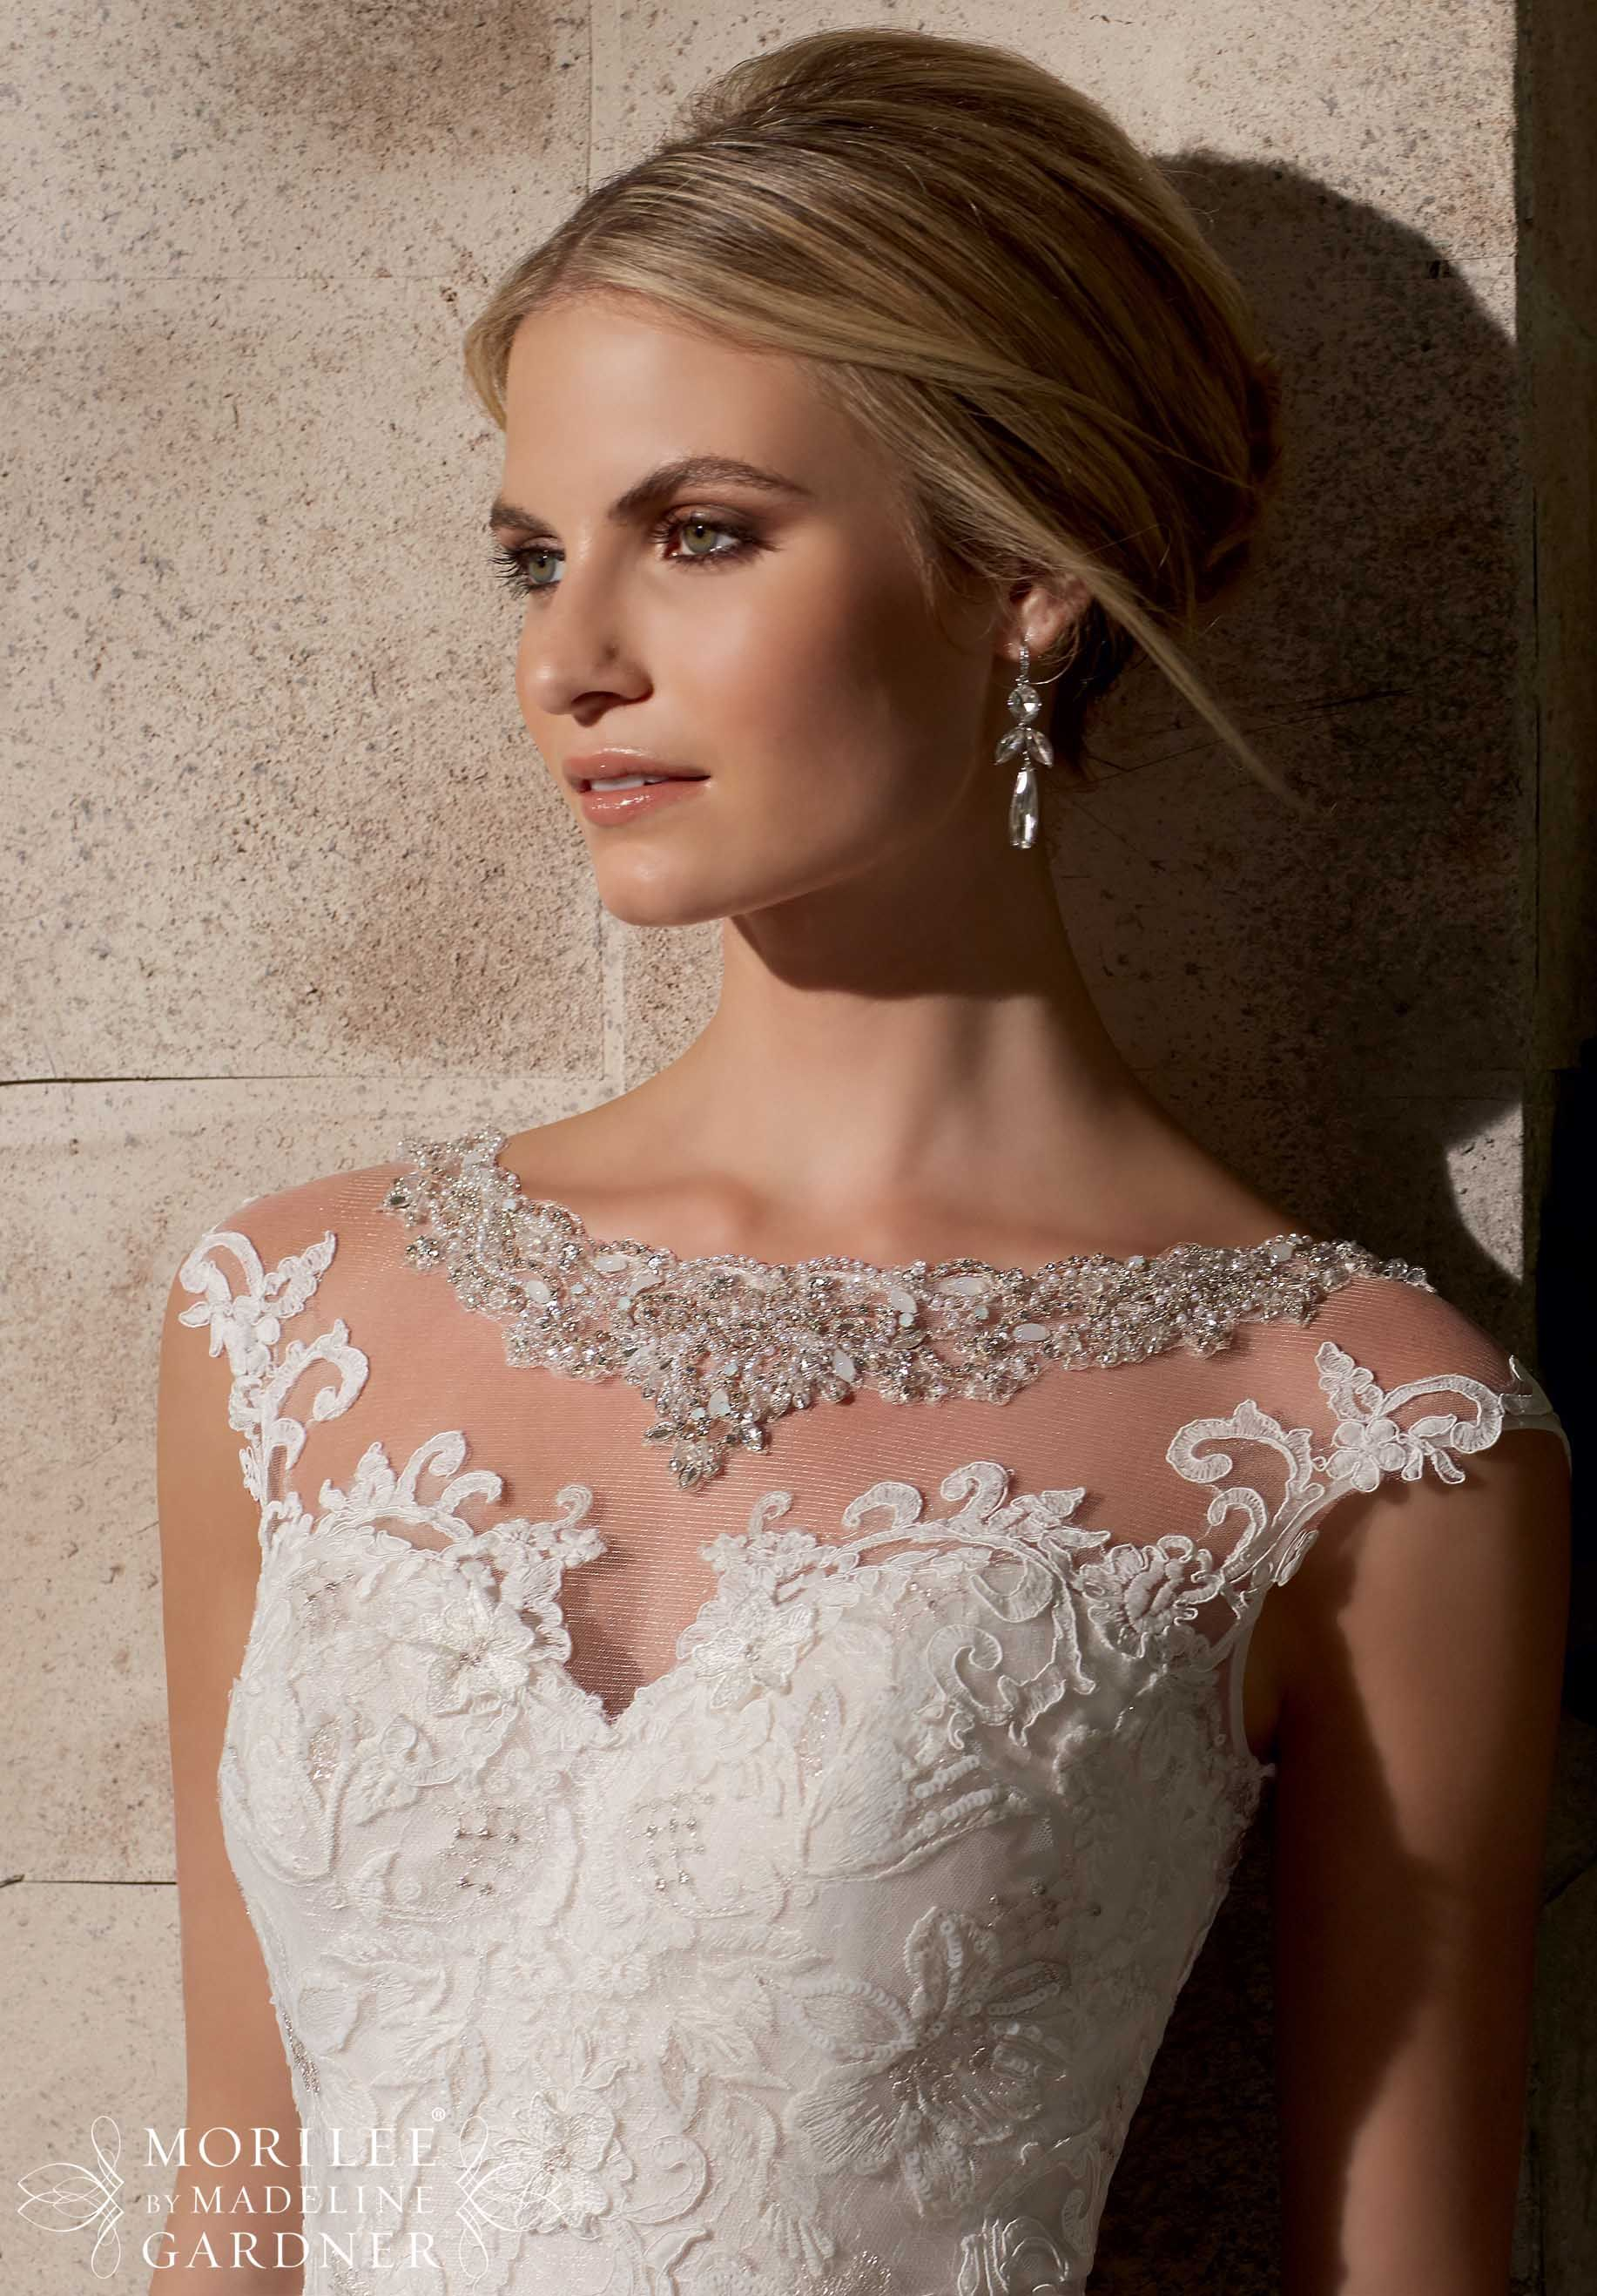 EMBROIDERED APPLIQUES ON NET OVER CHANTILLY LACE WITH CRYSTAL ...